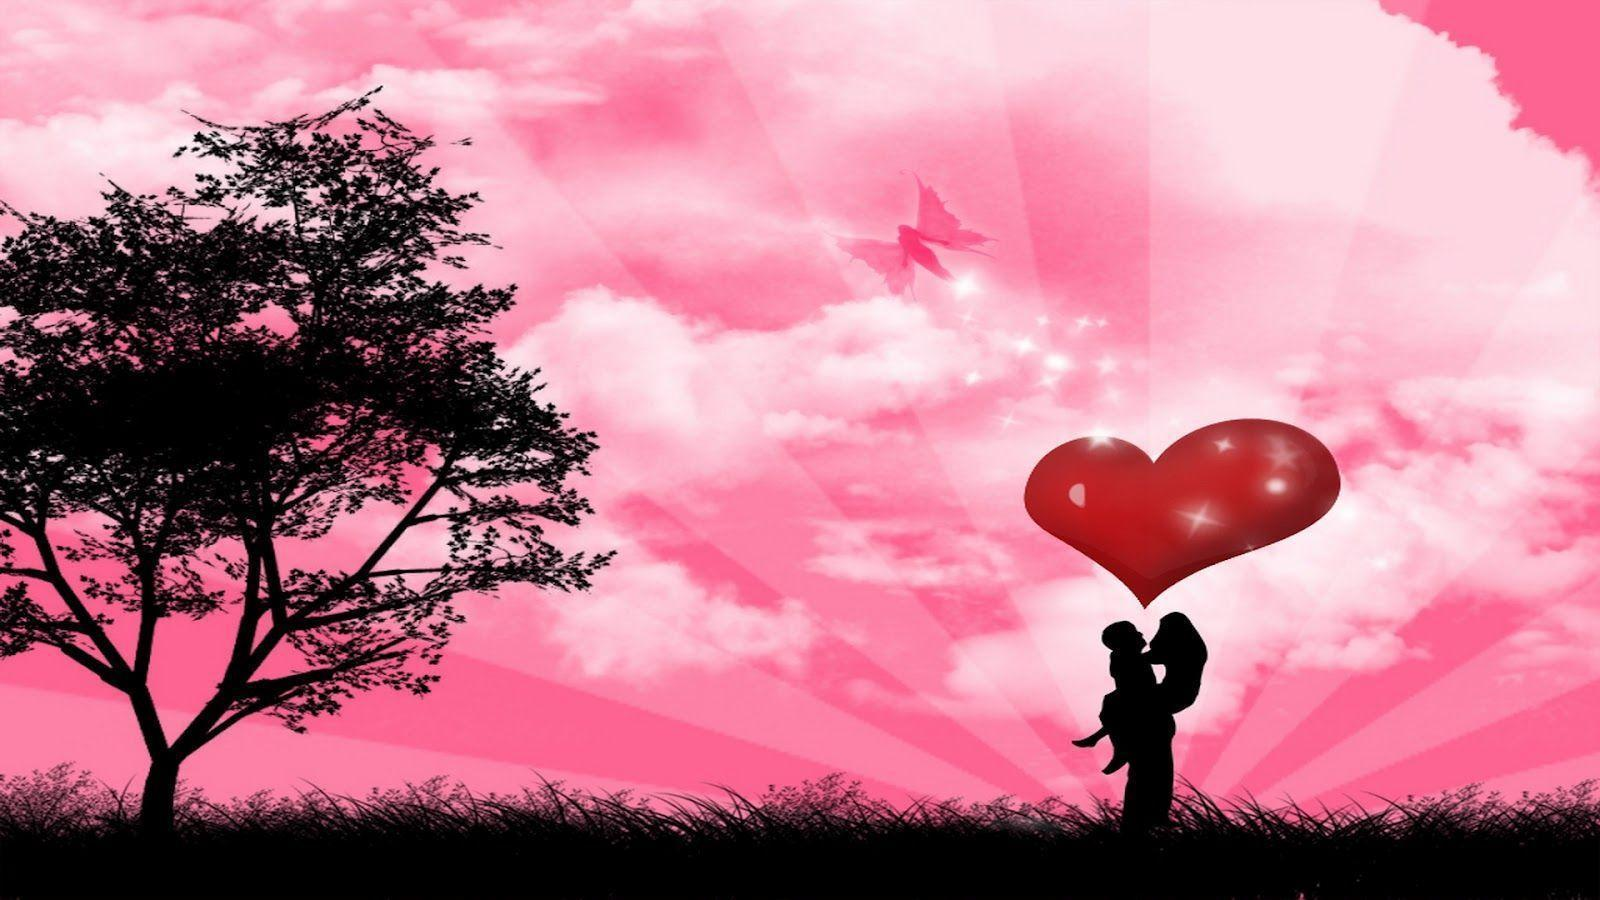 Love Wallpaper Backgrounds computer : Love Romantic Wallpapers - Wallpaper cave